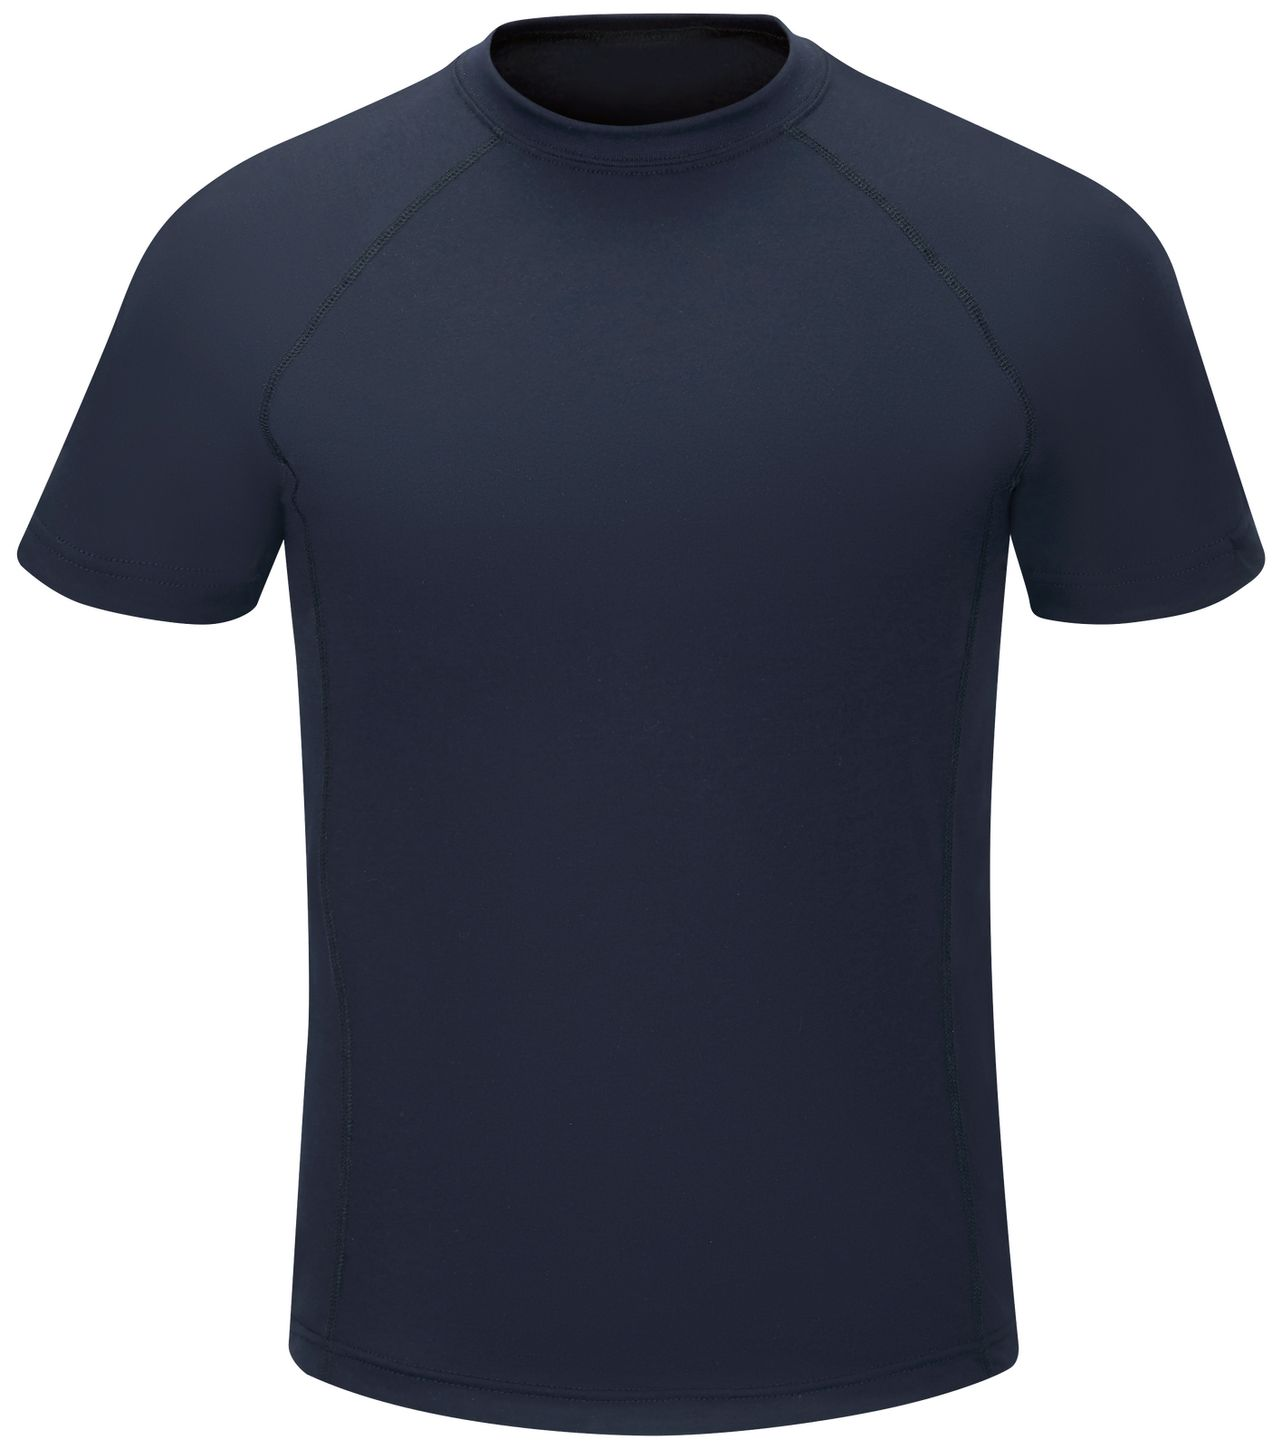 Workrite FR Station Wear Tee FT36, Base Layer, Athletic Style Navy Front